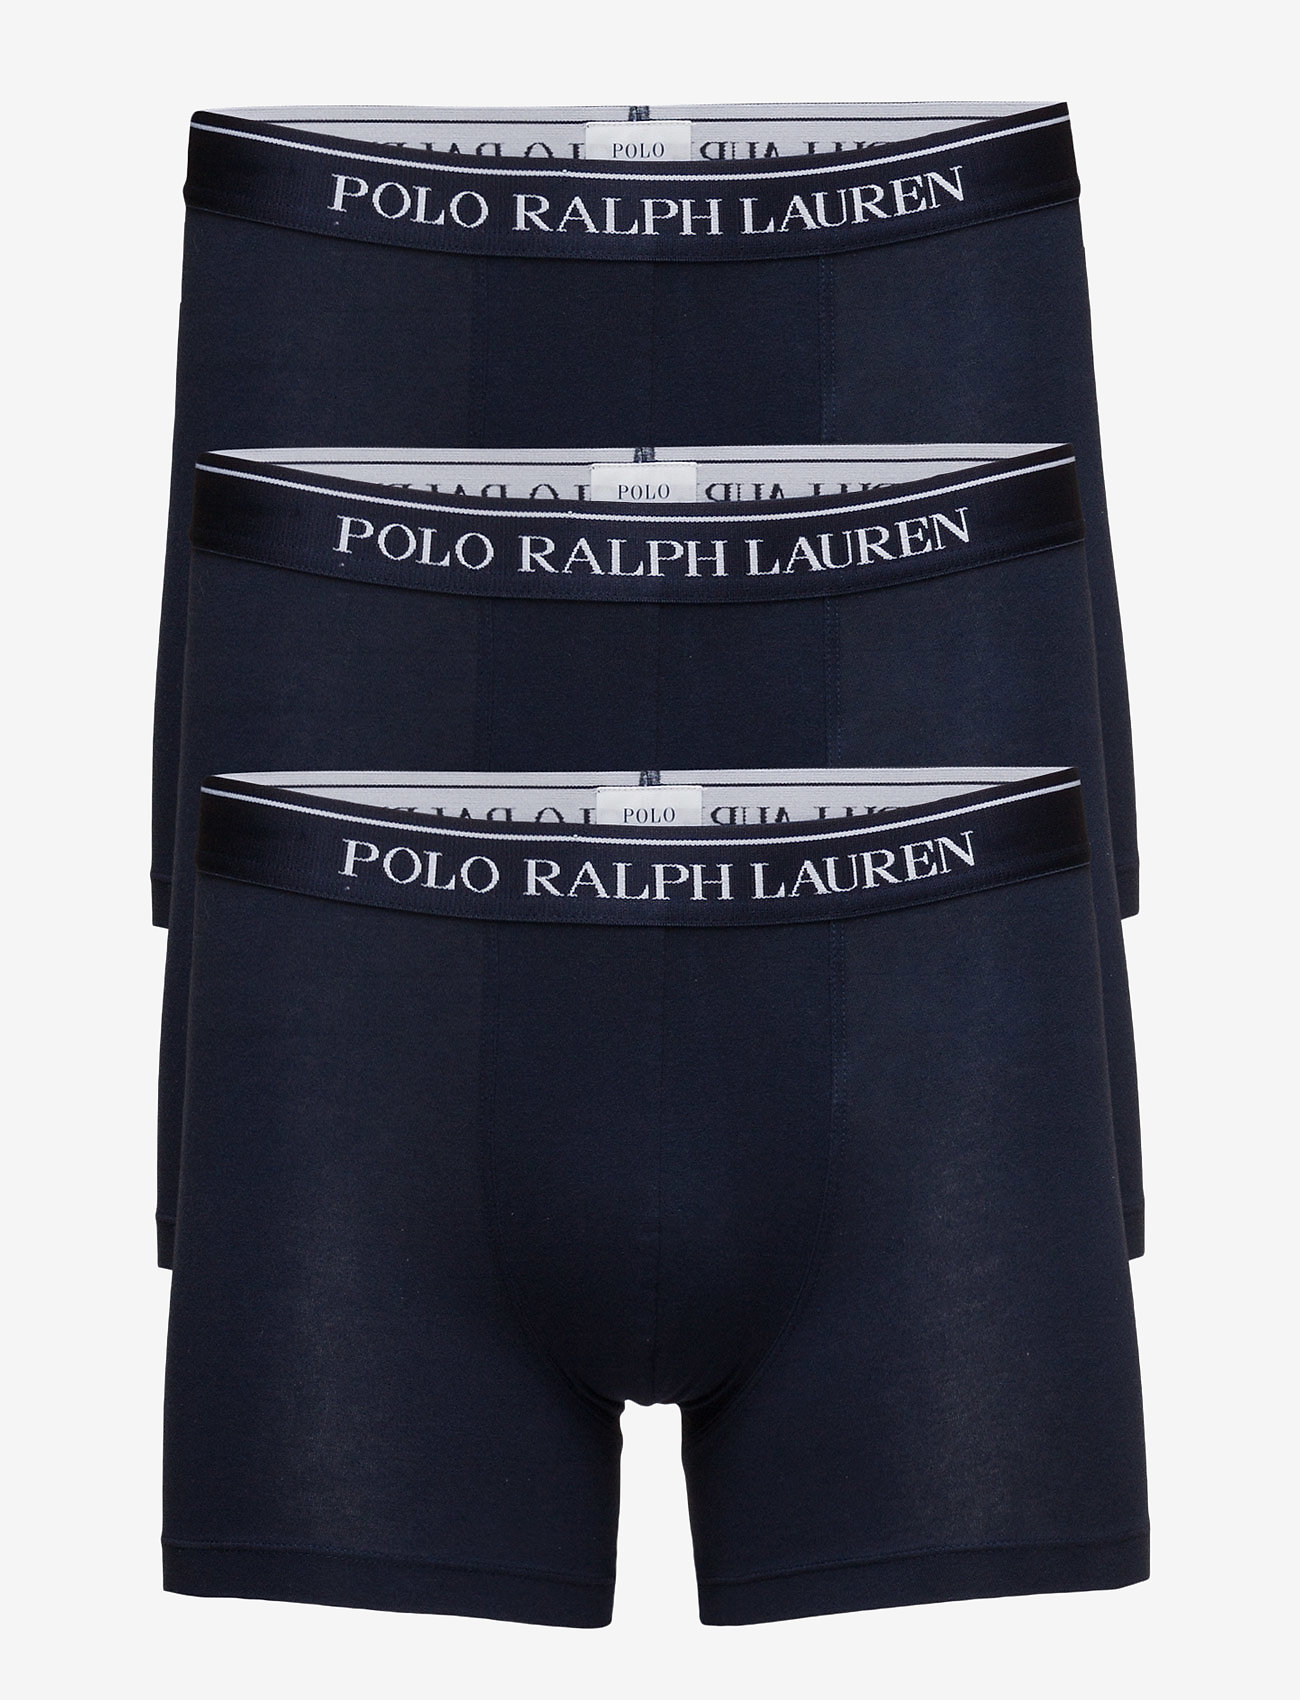 Polo Ralph Lauren Underwear - Stretch-Cotton-Trunk 3-Pack - boxers - 3pk cr nvy - 0